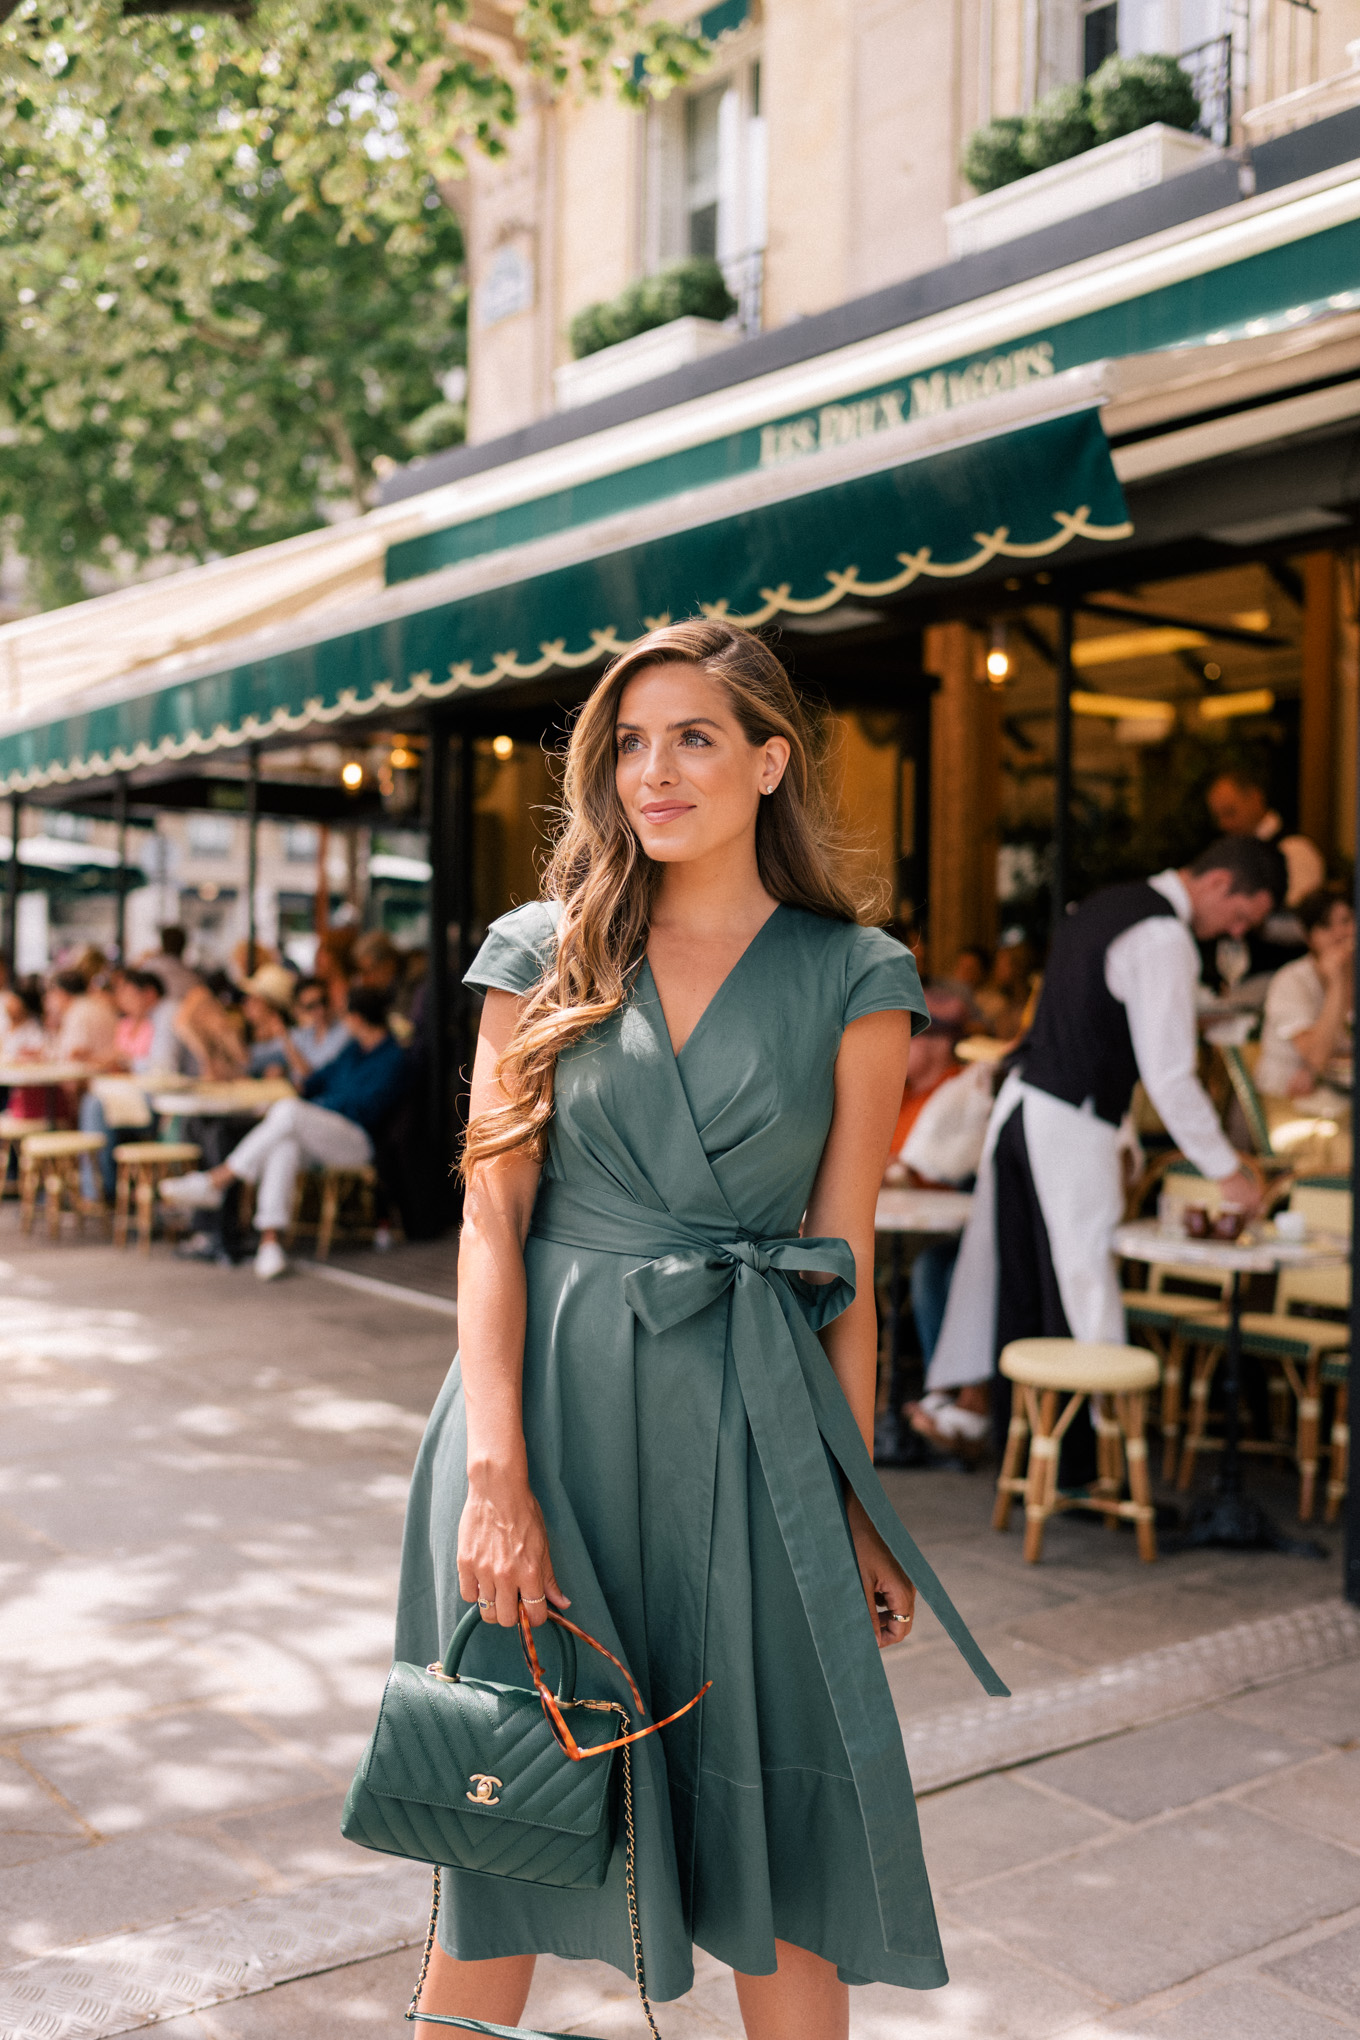 b88a72a05b8db We always go to either Cafe Le Bonaparte, Brasserie Lipp or Cafe de Flore,  which are all nearby, but have ...